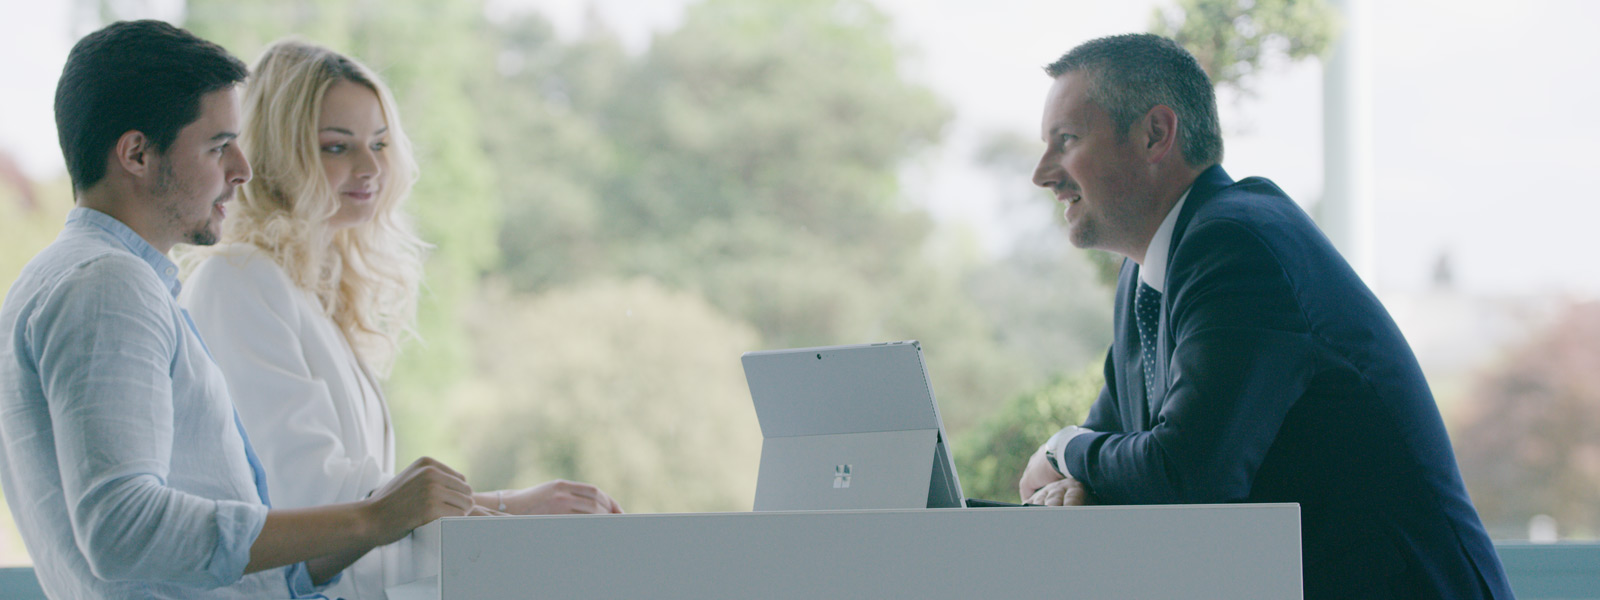 Three people sit at a desk with a Surface Pro with an outdoor setting in the back.